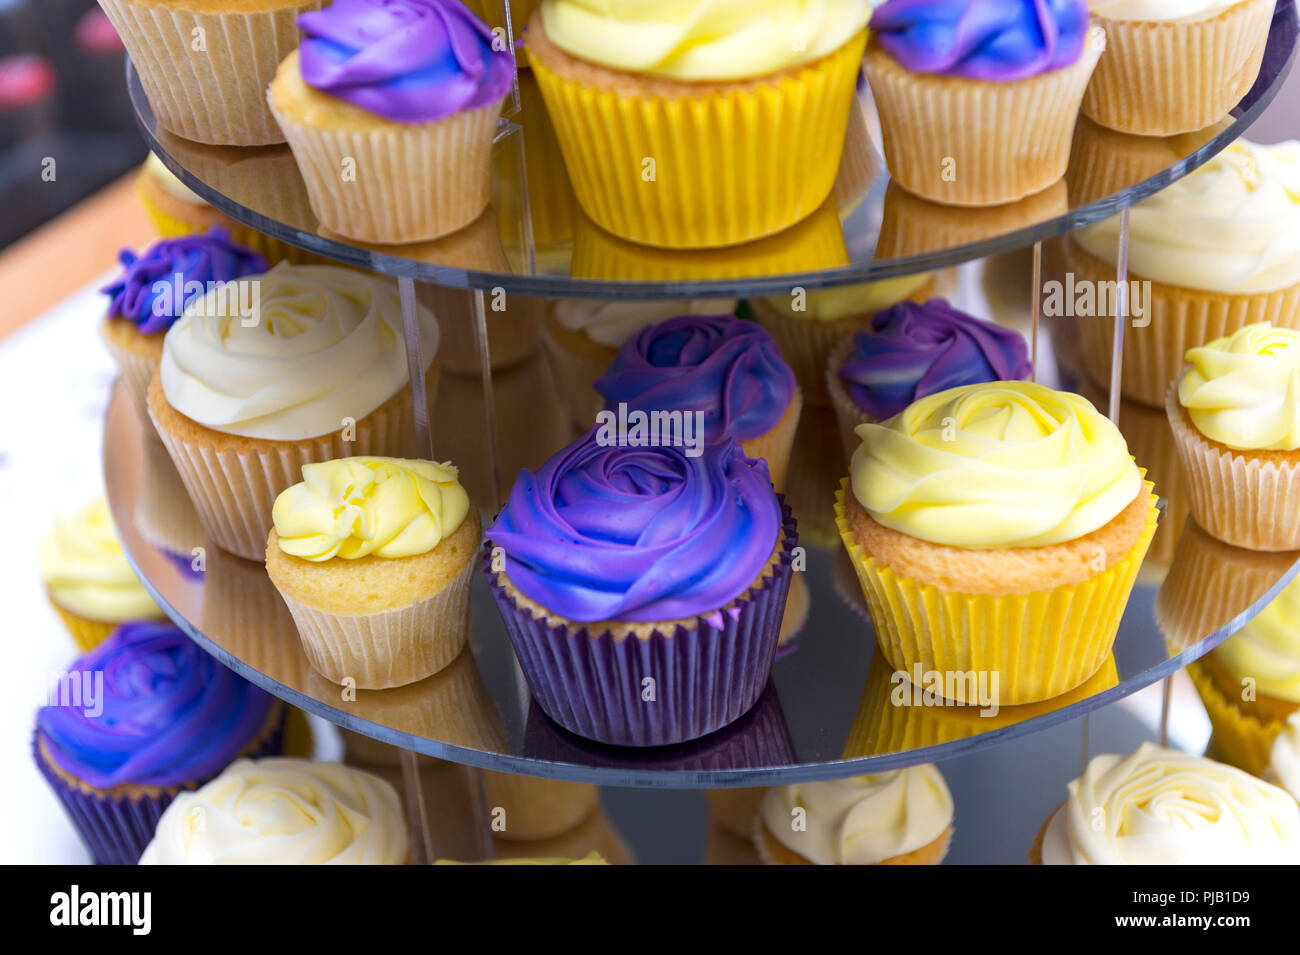 Celebration purple and yellow cupcakes on cake stand for 70th birthday - Stock Image